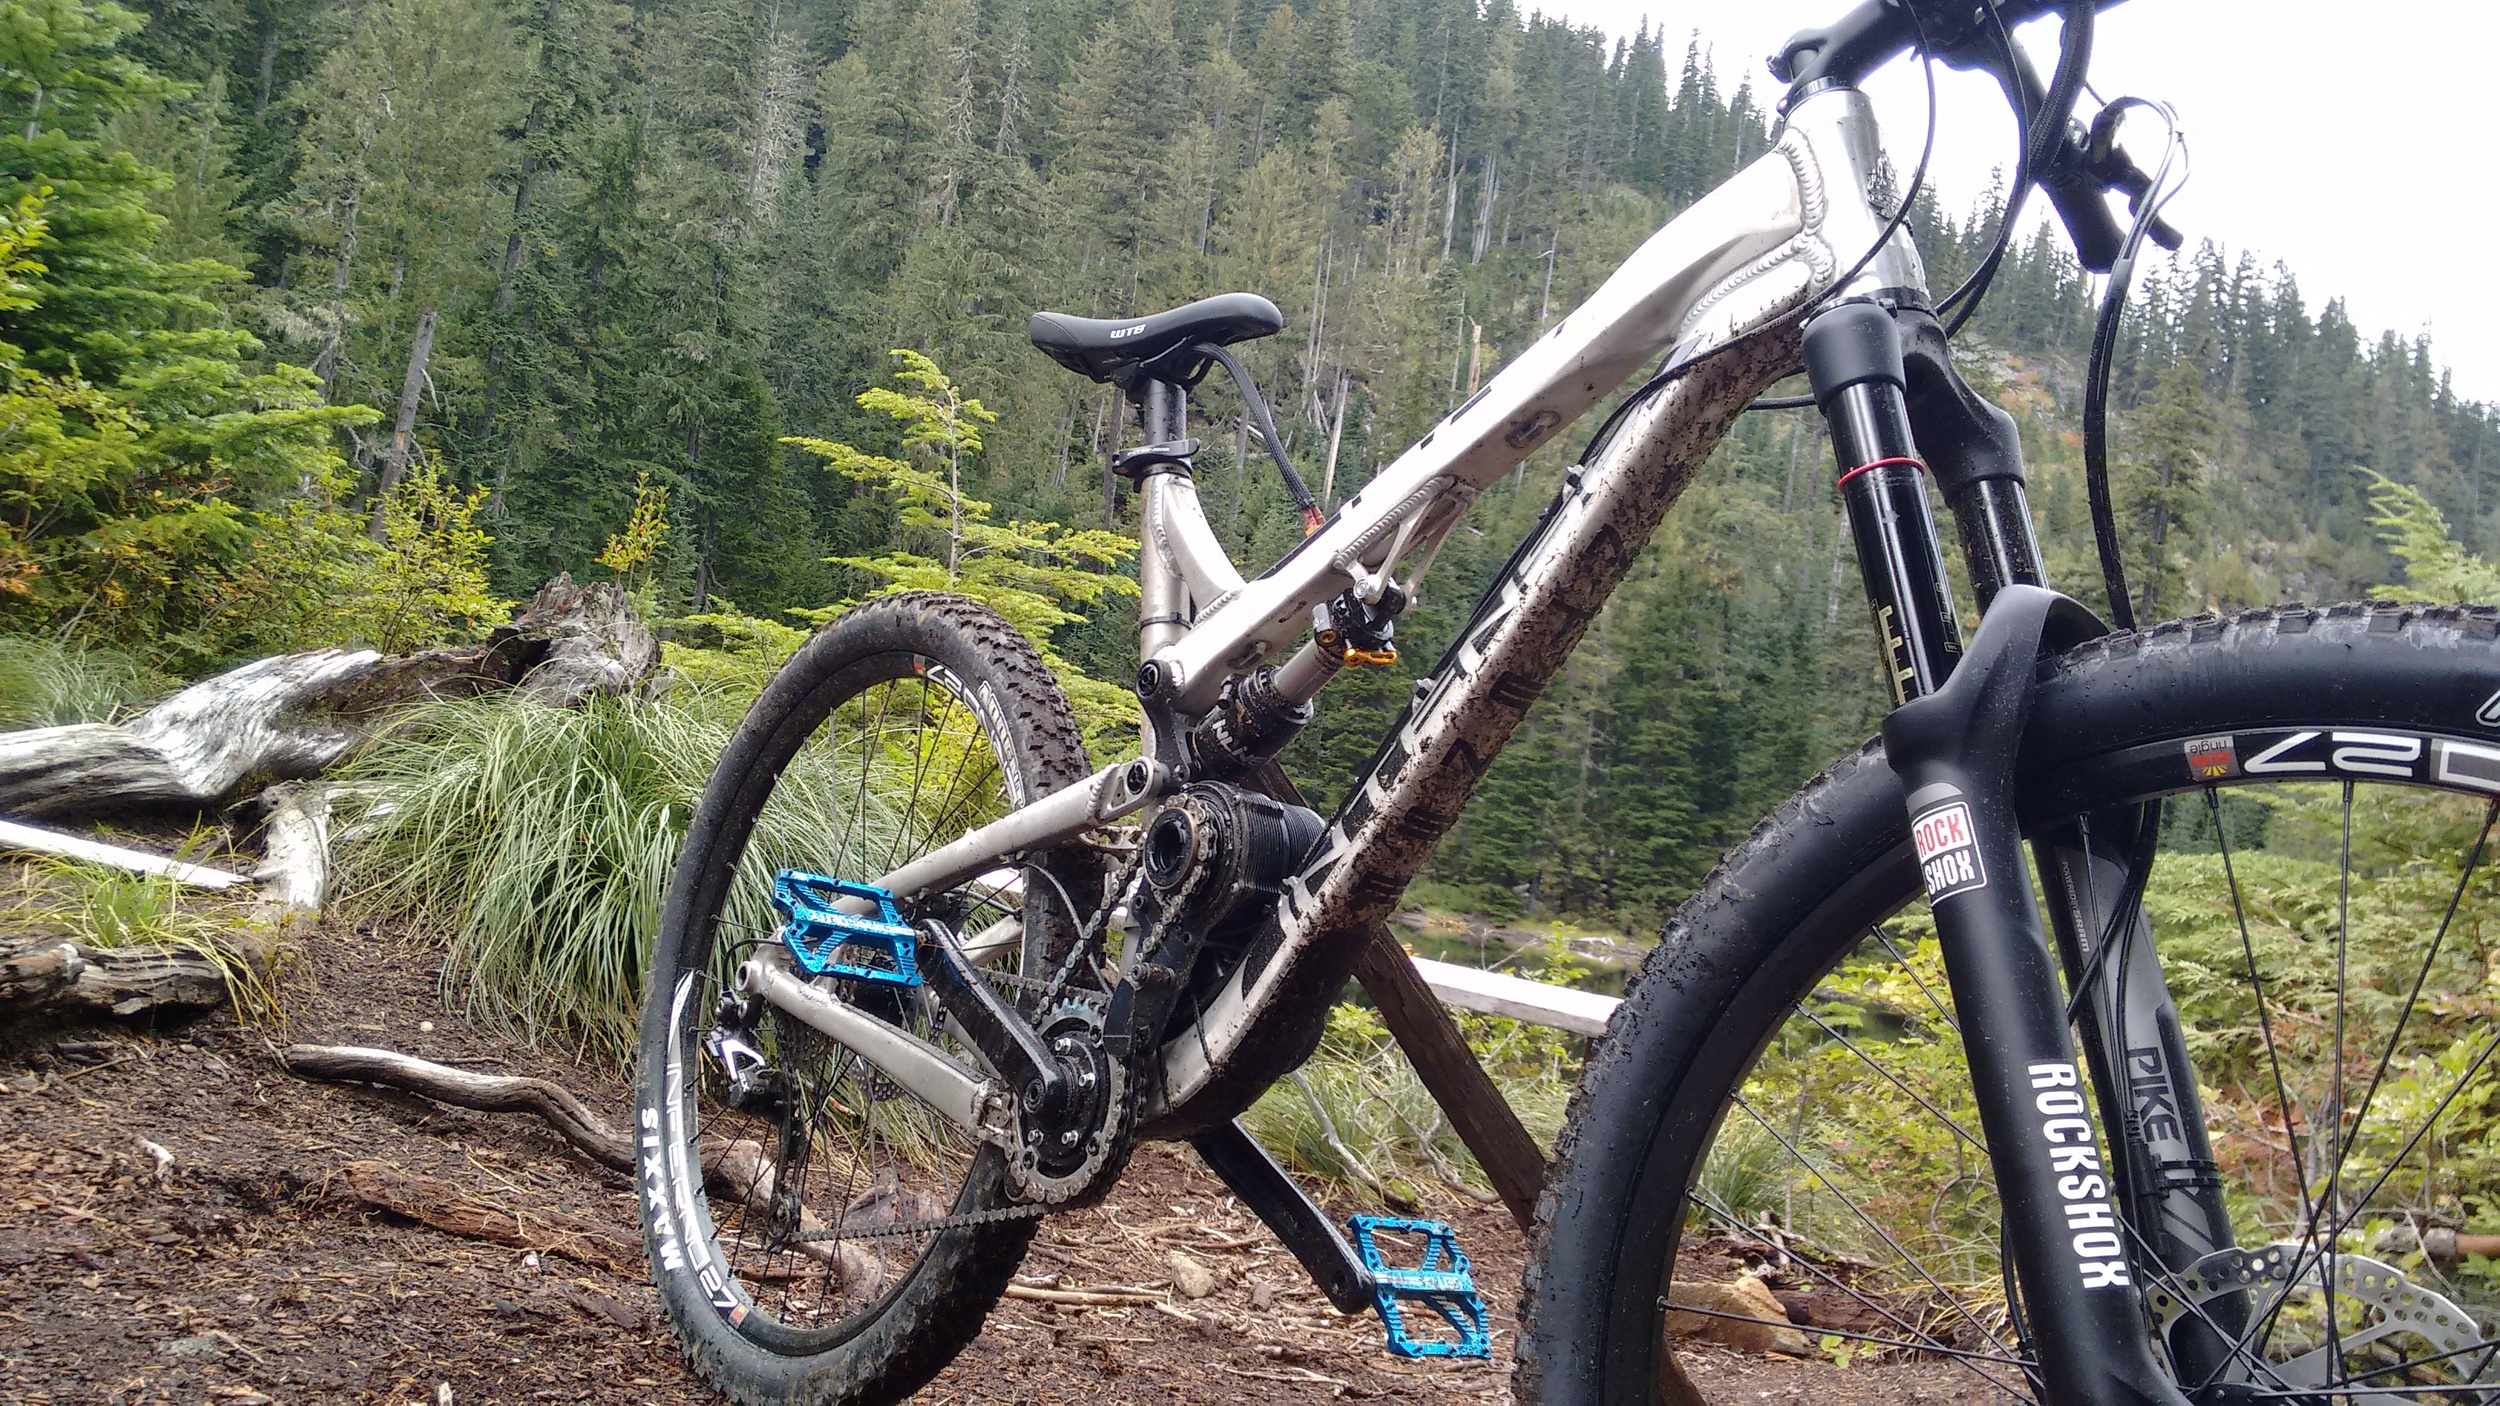 6 inches of reactive all-mountain suspension, 6kW, 36lbs. Every trail is new again.